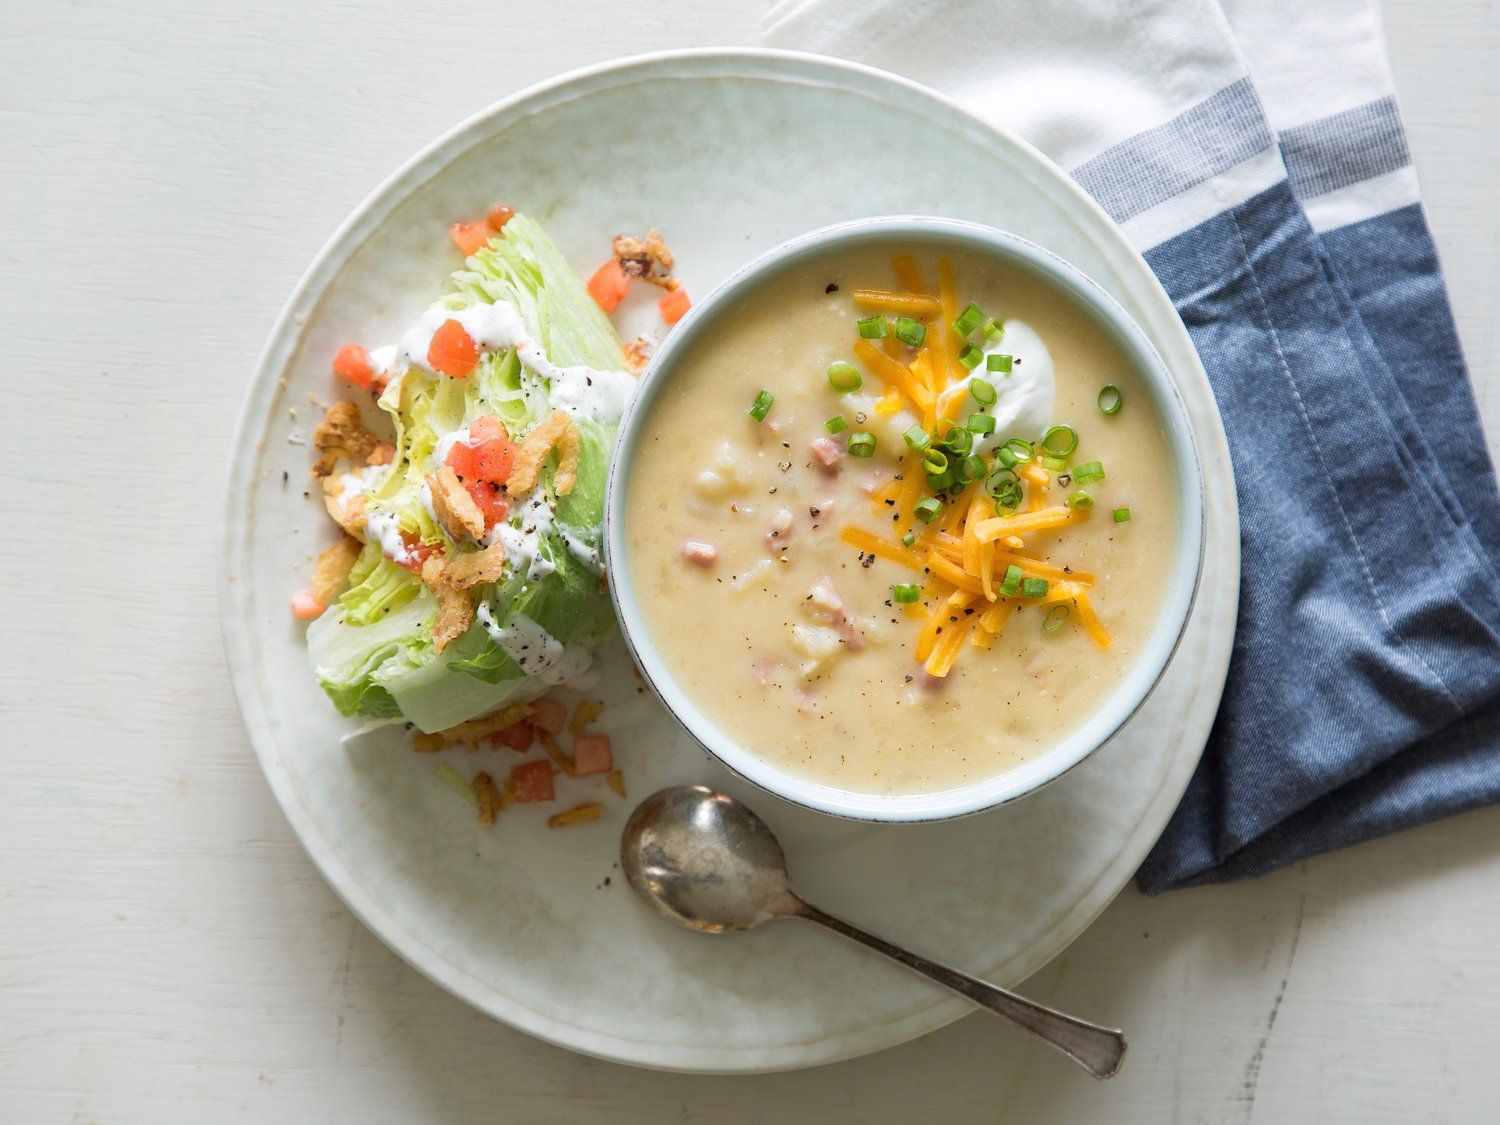 Cheesy Ham And Potato Soup Recipe With Images Ham And Potato Soup Cheesy Ham Potato Soup